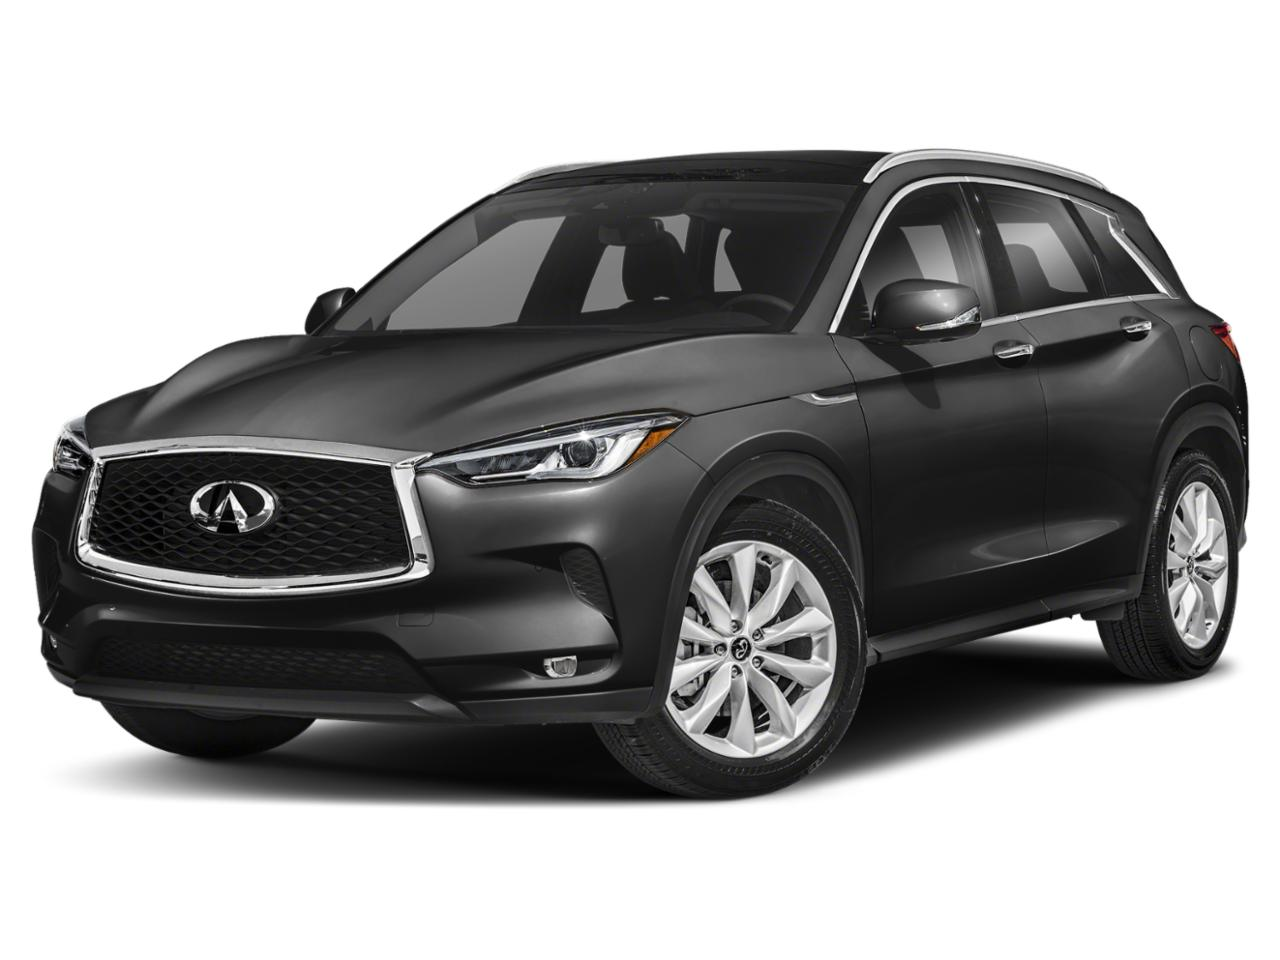 2020 INFINITI QX50 Vehicle Photo in San Antonio, TX 78230